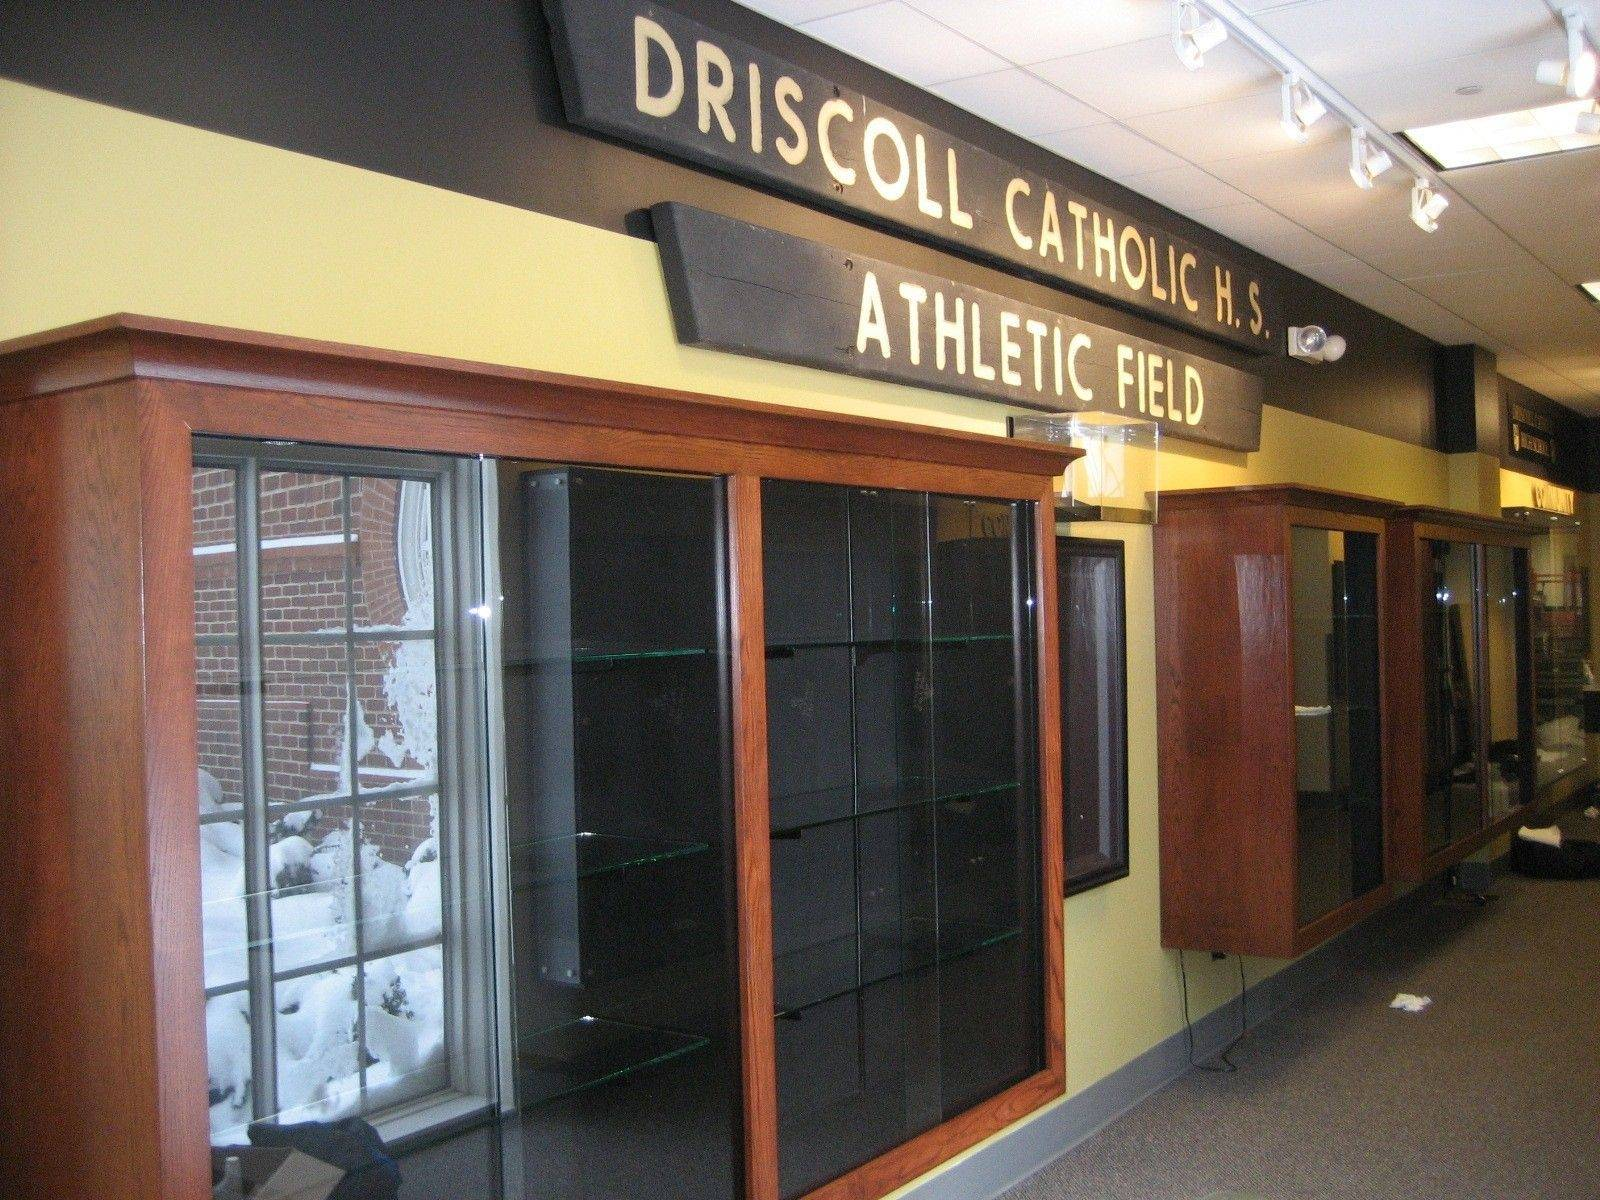 Work is about 75 percent finished at the Driscoll Legacy Corridor inside Addison village hall. Organizers say the official opening for the homage to the shuttered Driscoll Catholic High School is set for April.